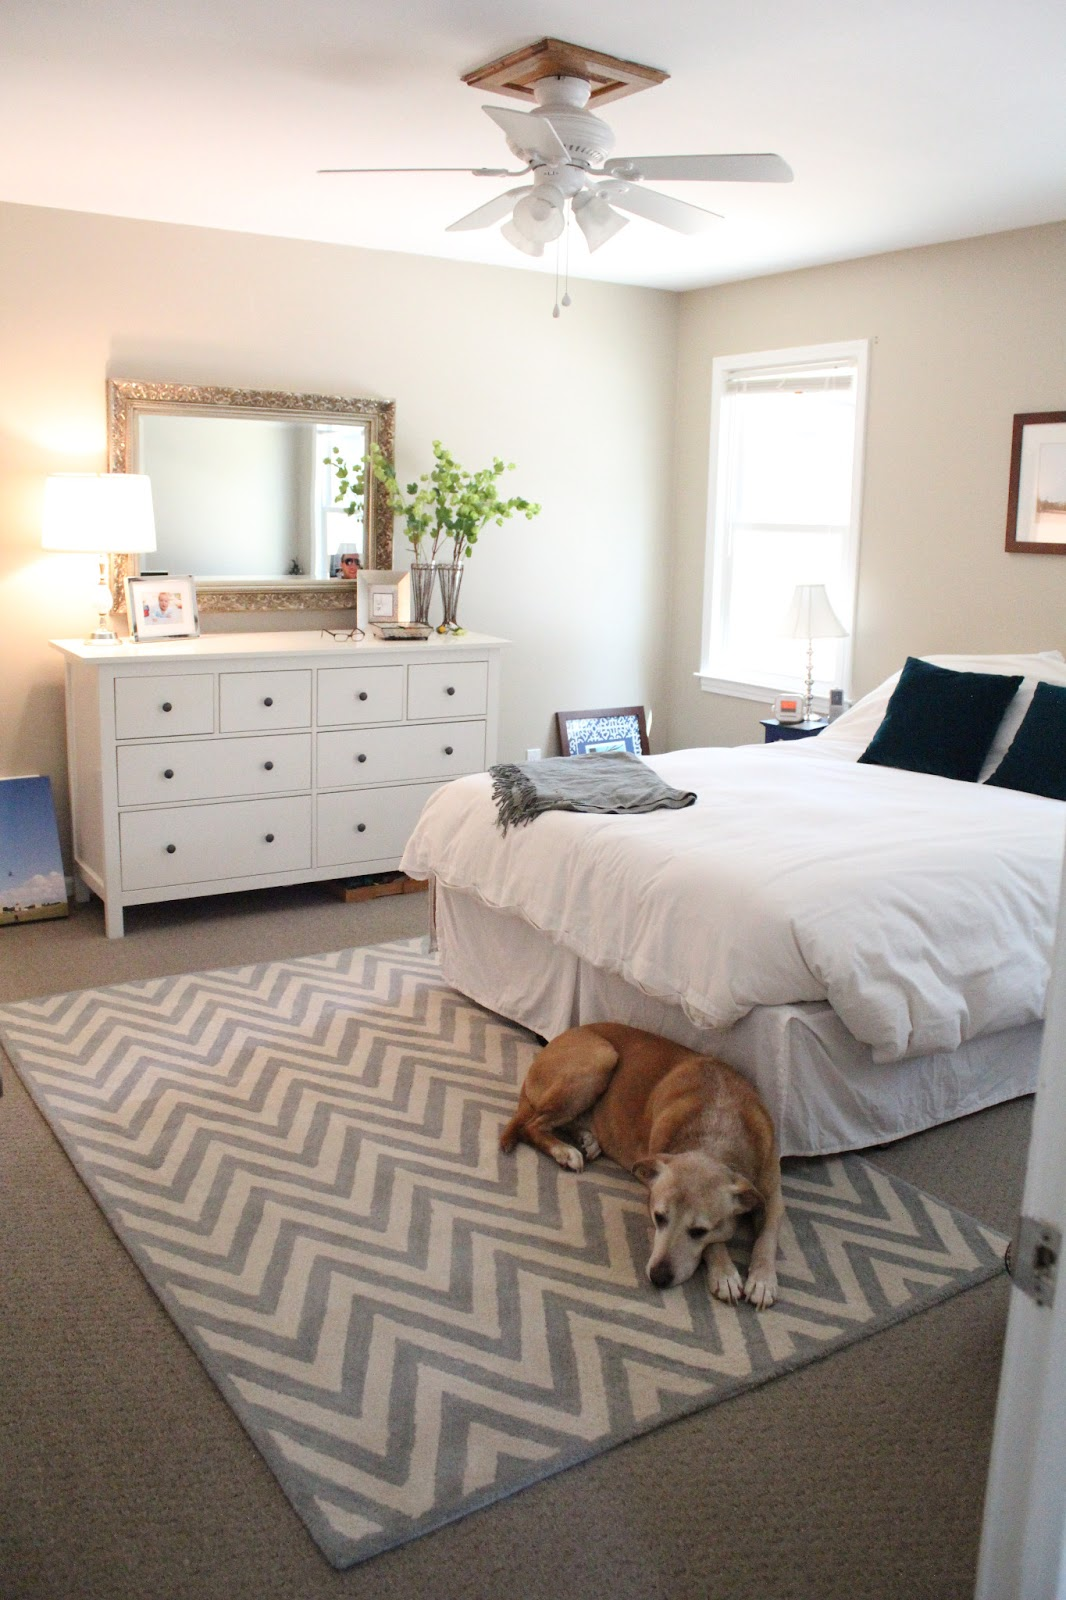 Ten june our rental house a master bedroom tour for Simplistic bedroom ideas